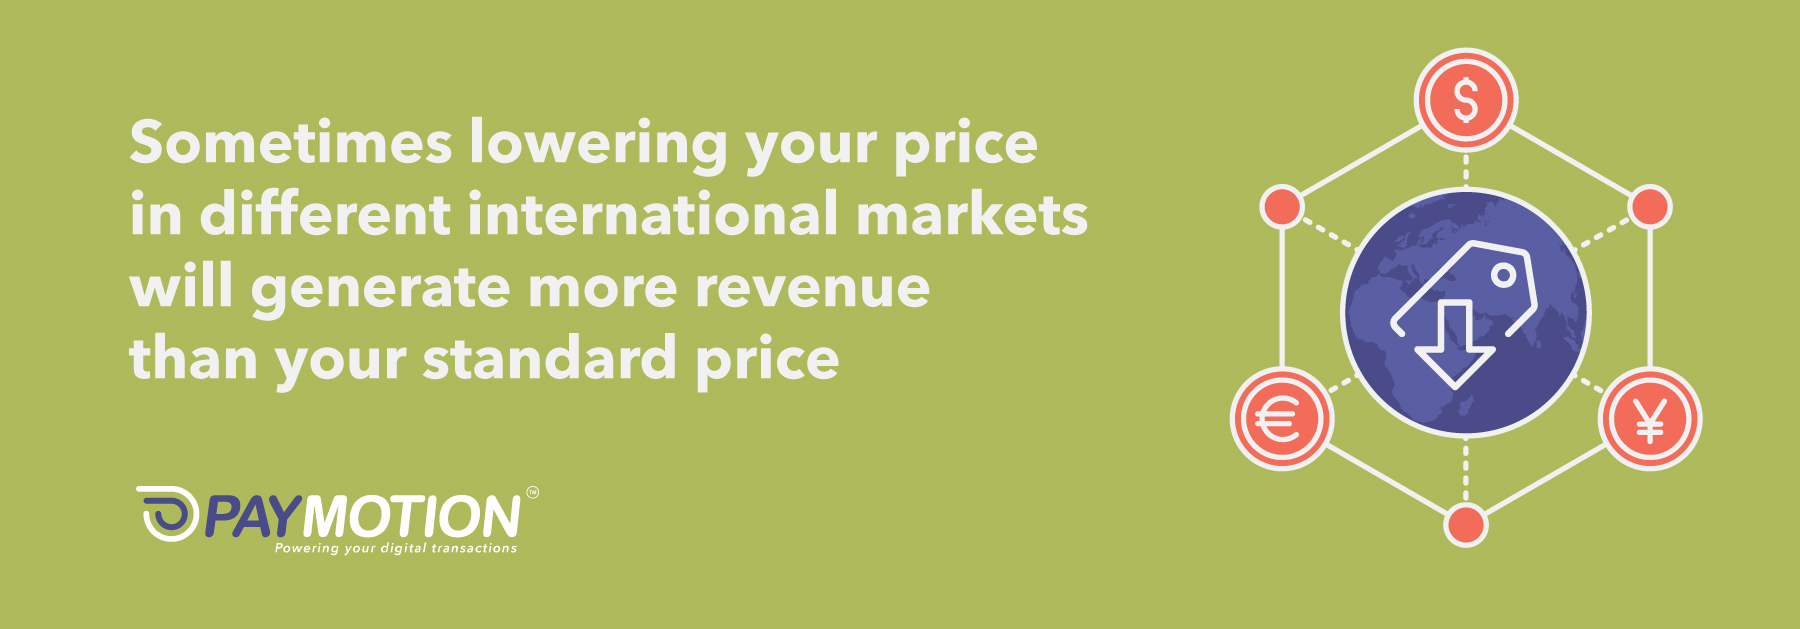 Ecommerce launch: sometimes, lowering your price in different international markets will generate more revenue than your standard price.